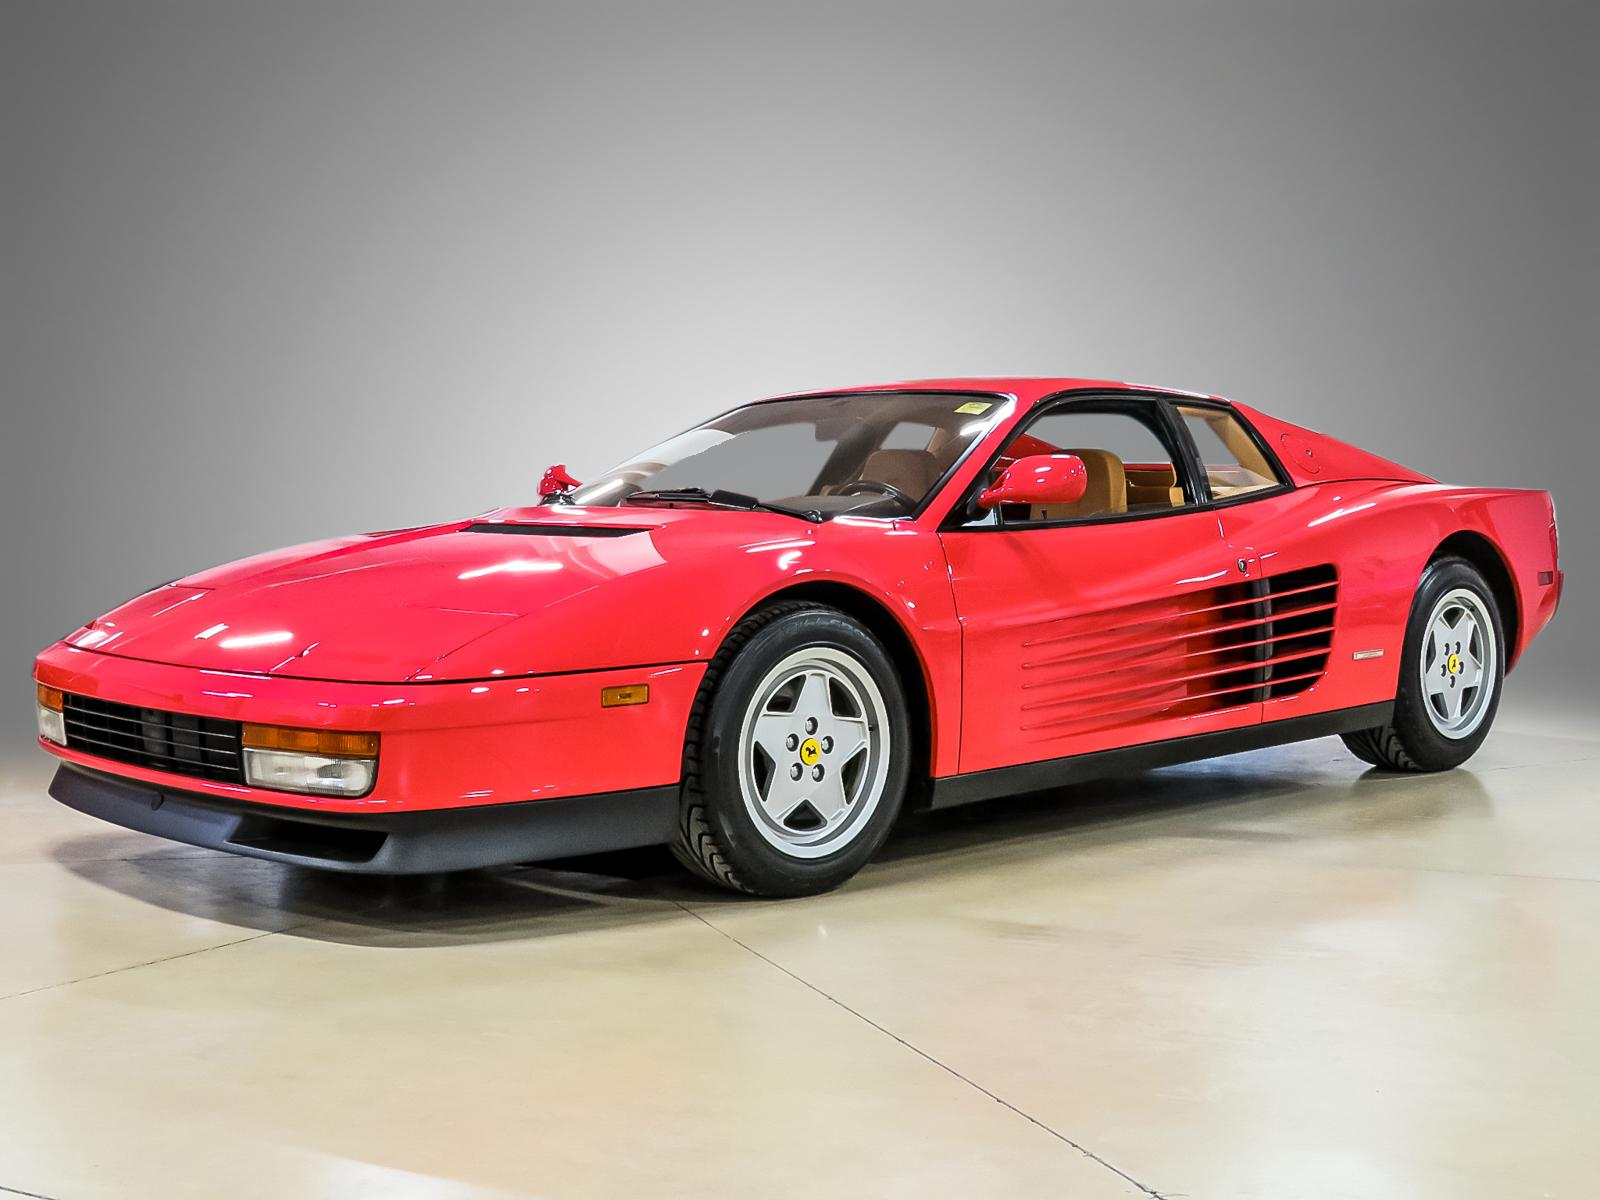 sale inventory used testarossa for main sales in ferrari image large edmonton pbs ab